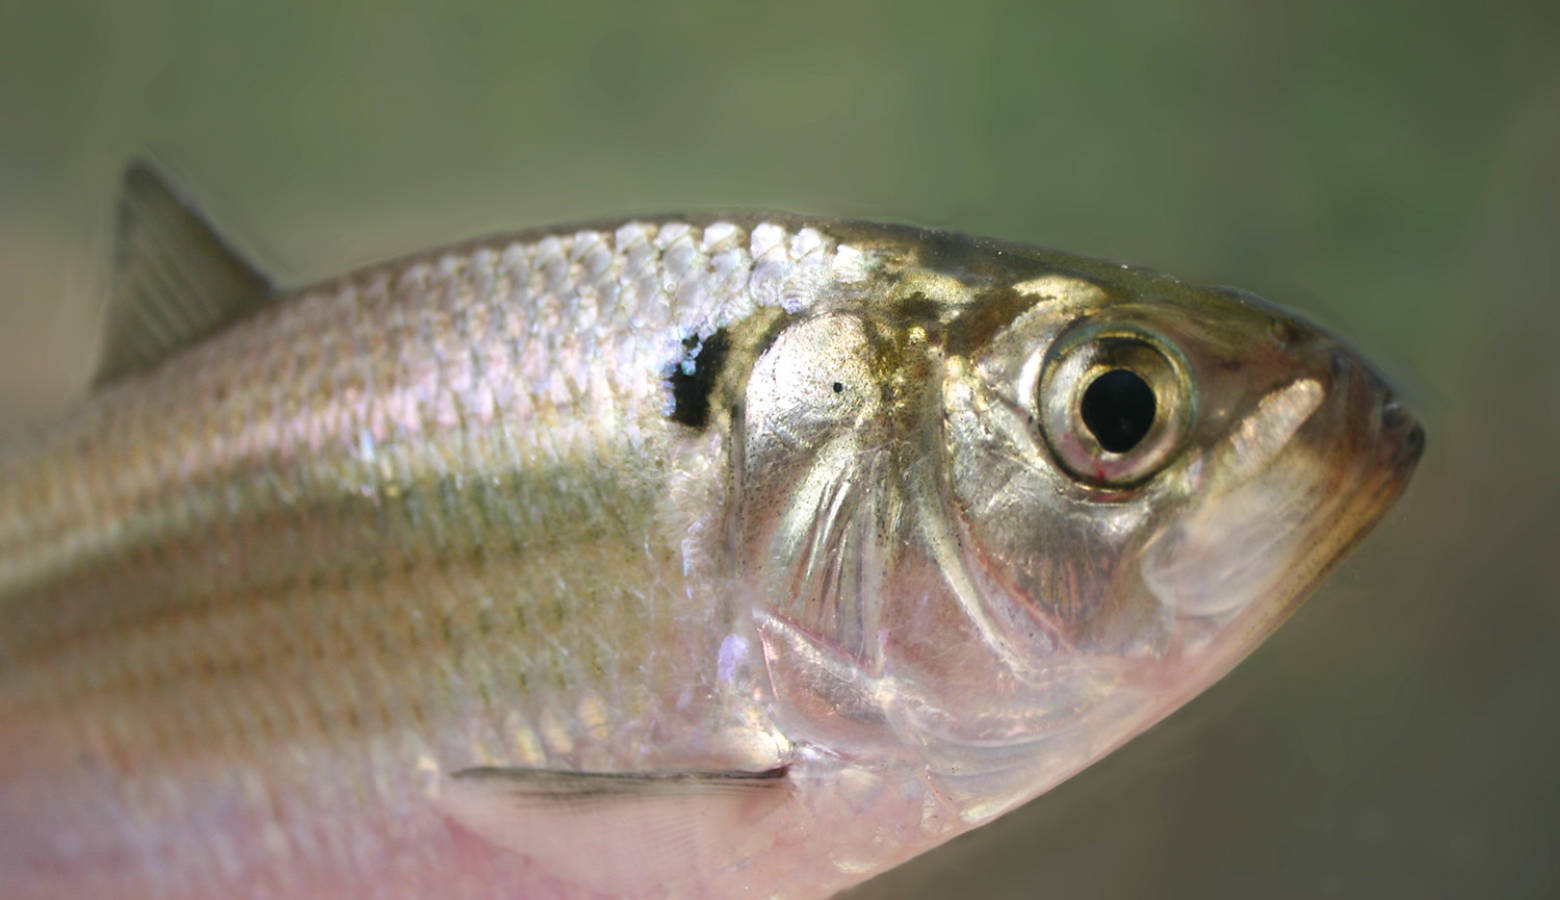 Though the amount of gizzard shad, pictured here, decreased in the Wabash River over the past 60 years, it's numbers stayed about the same in the Ohio River, Mark Pyron says. (Brian Gratwicke/Wikimedia Commons)